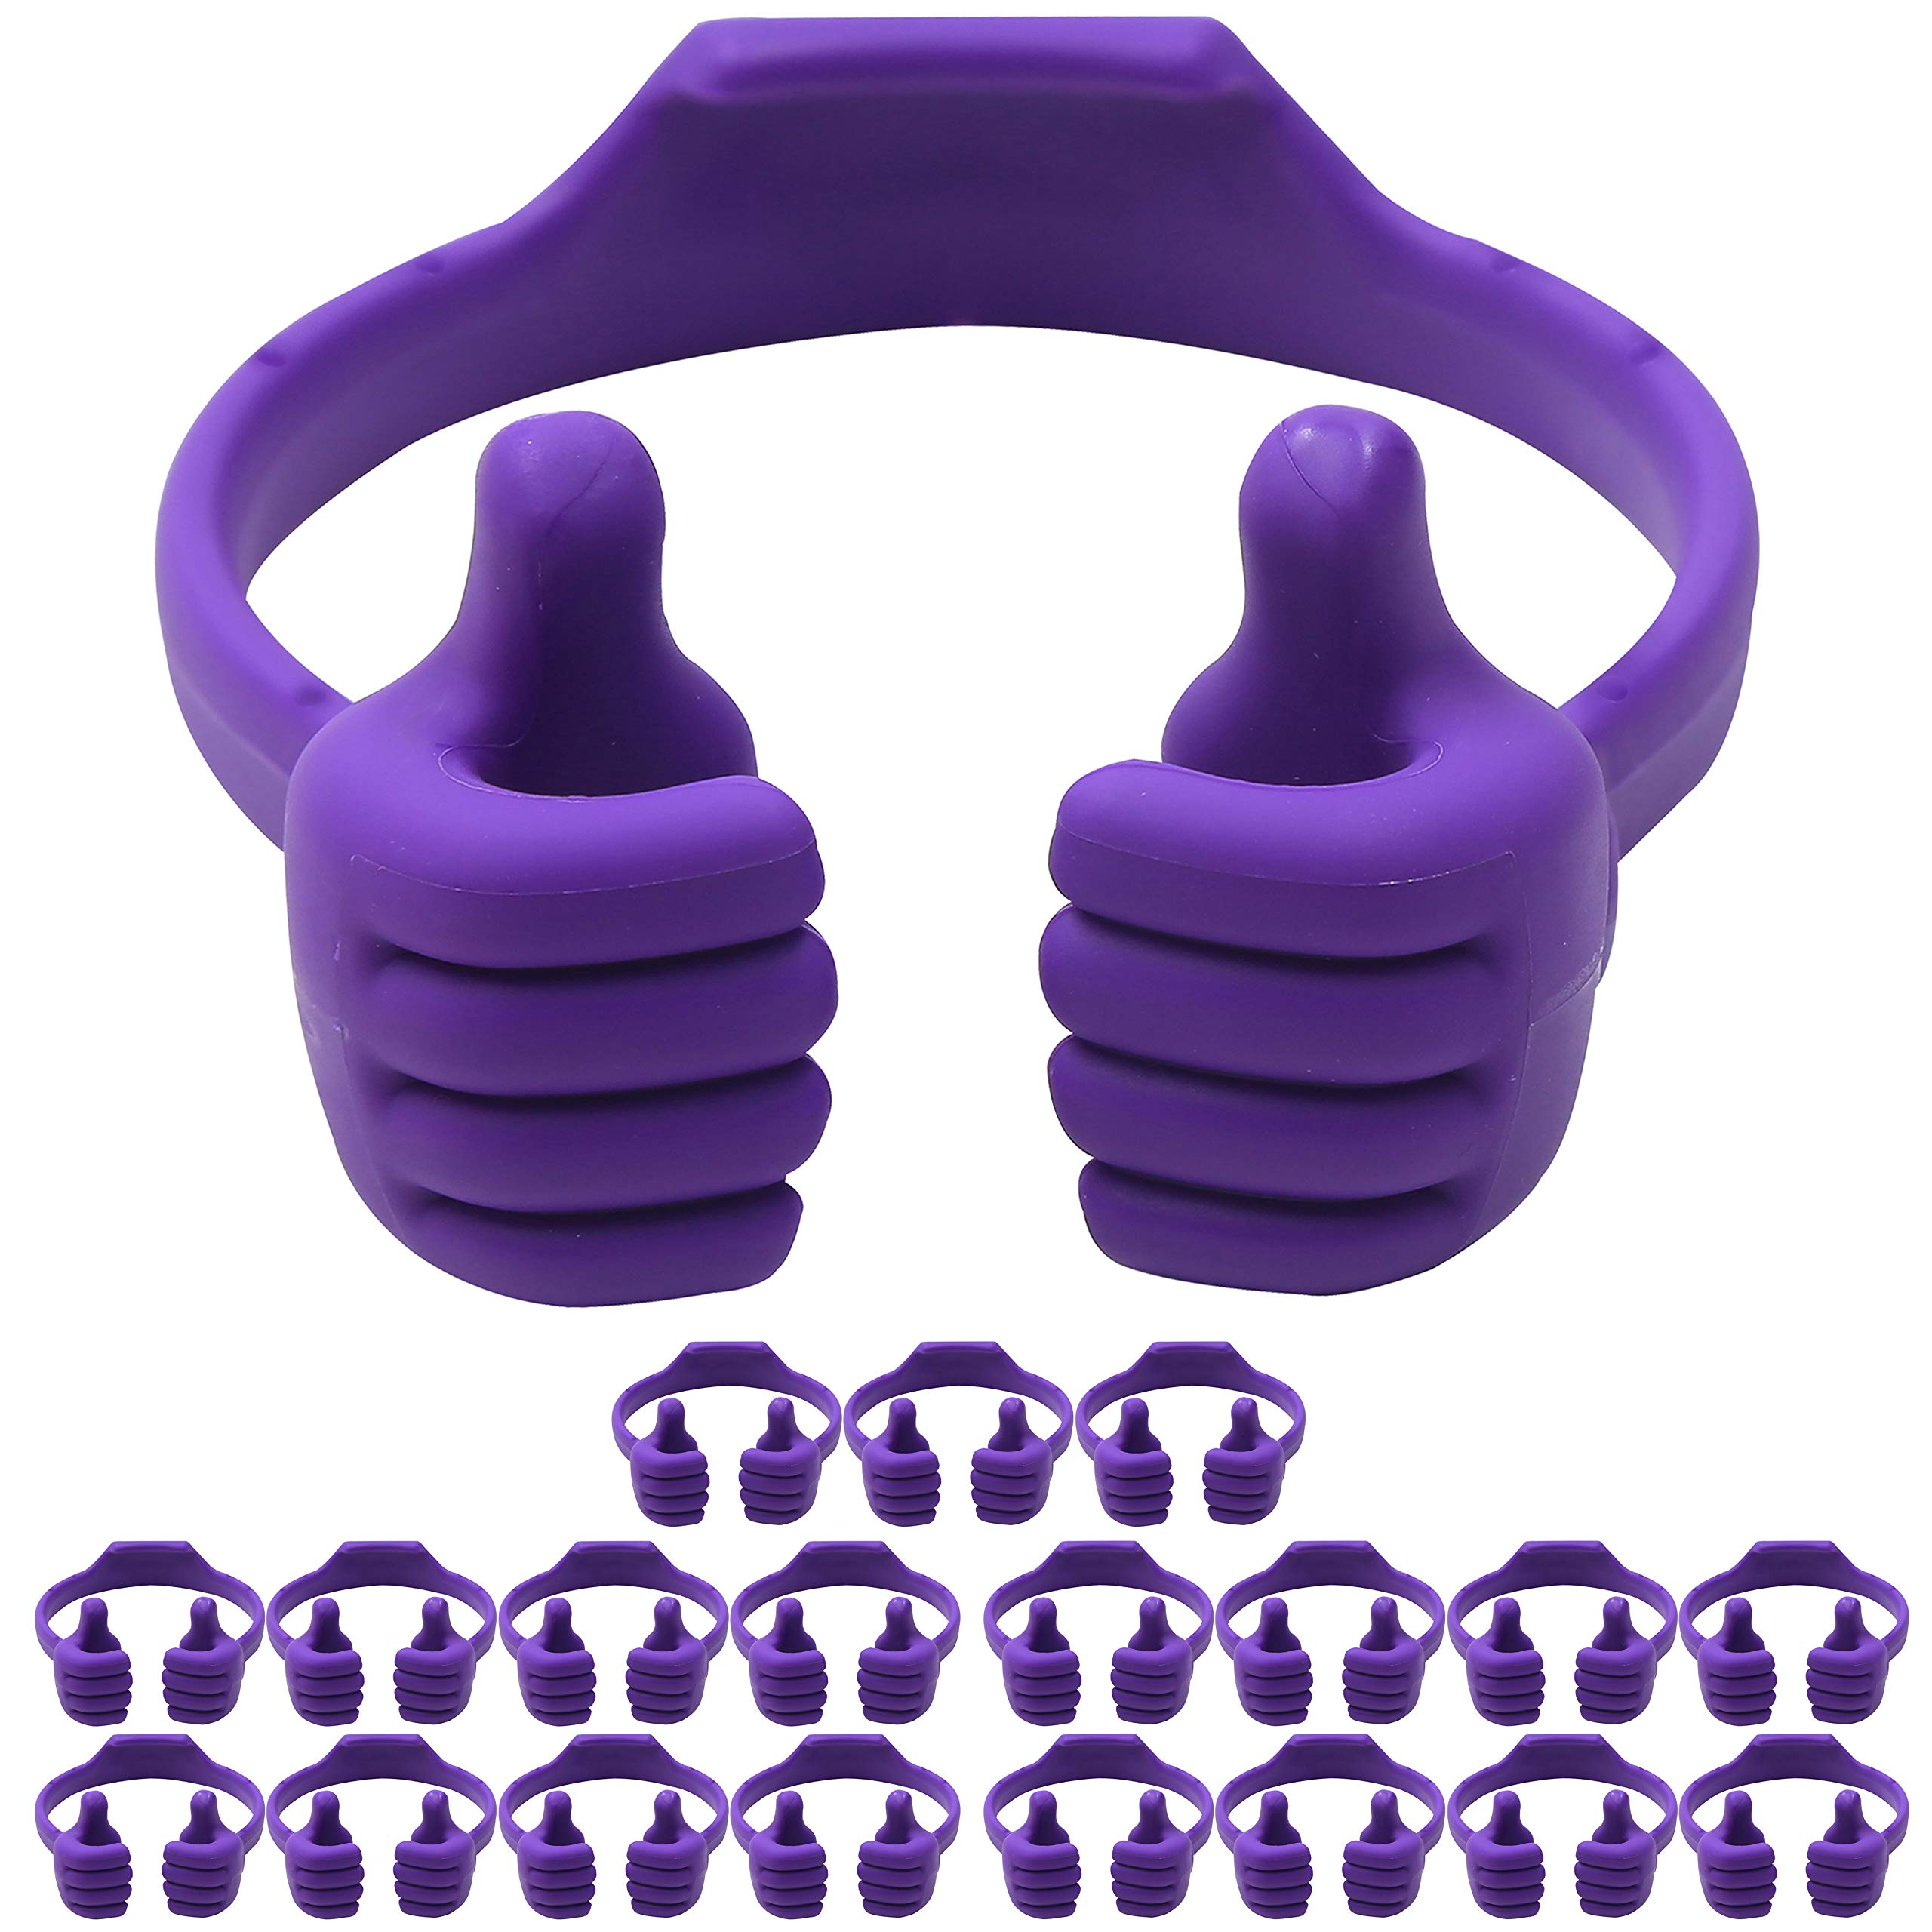 Cell Phone Tablet Stands (20 Packs): Honsky Thumbs-up Cellphone Holder, Tablet Display Stand, Mobile Smartphone Mount Cradle for Desk Desktop - Universal, Multi-Angle, Cute, Purple by Honsky